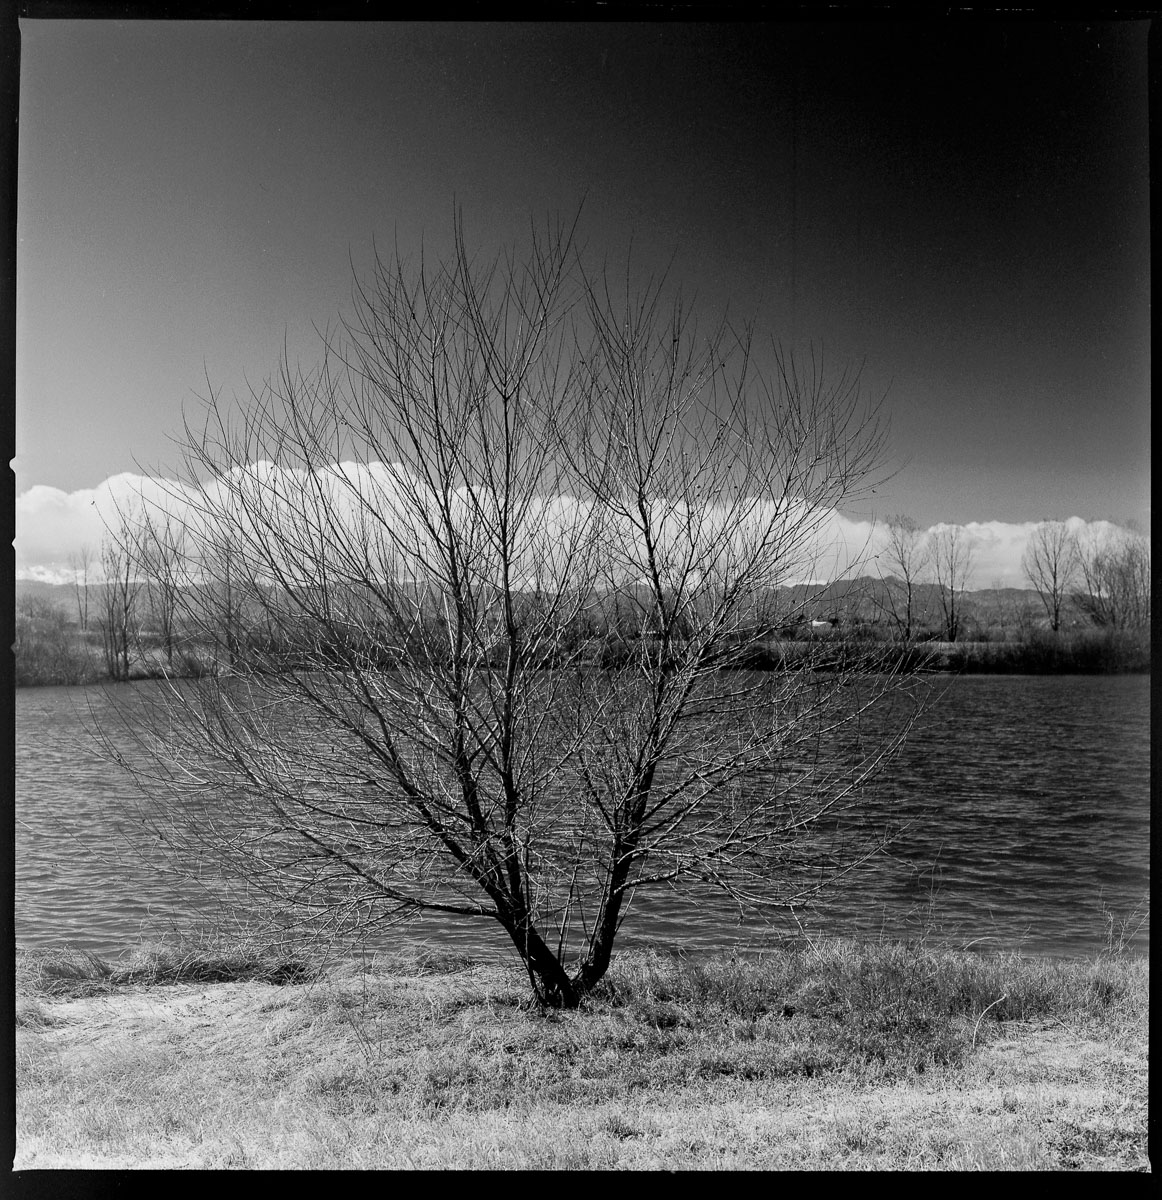 fineart-tree-film-bw-1.jpg